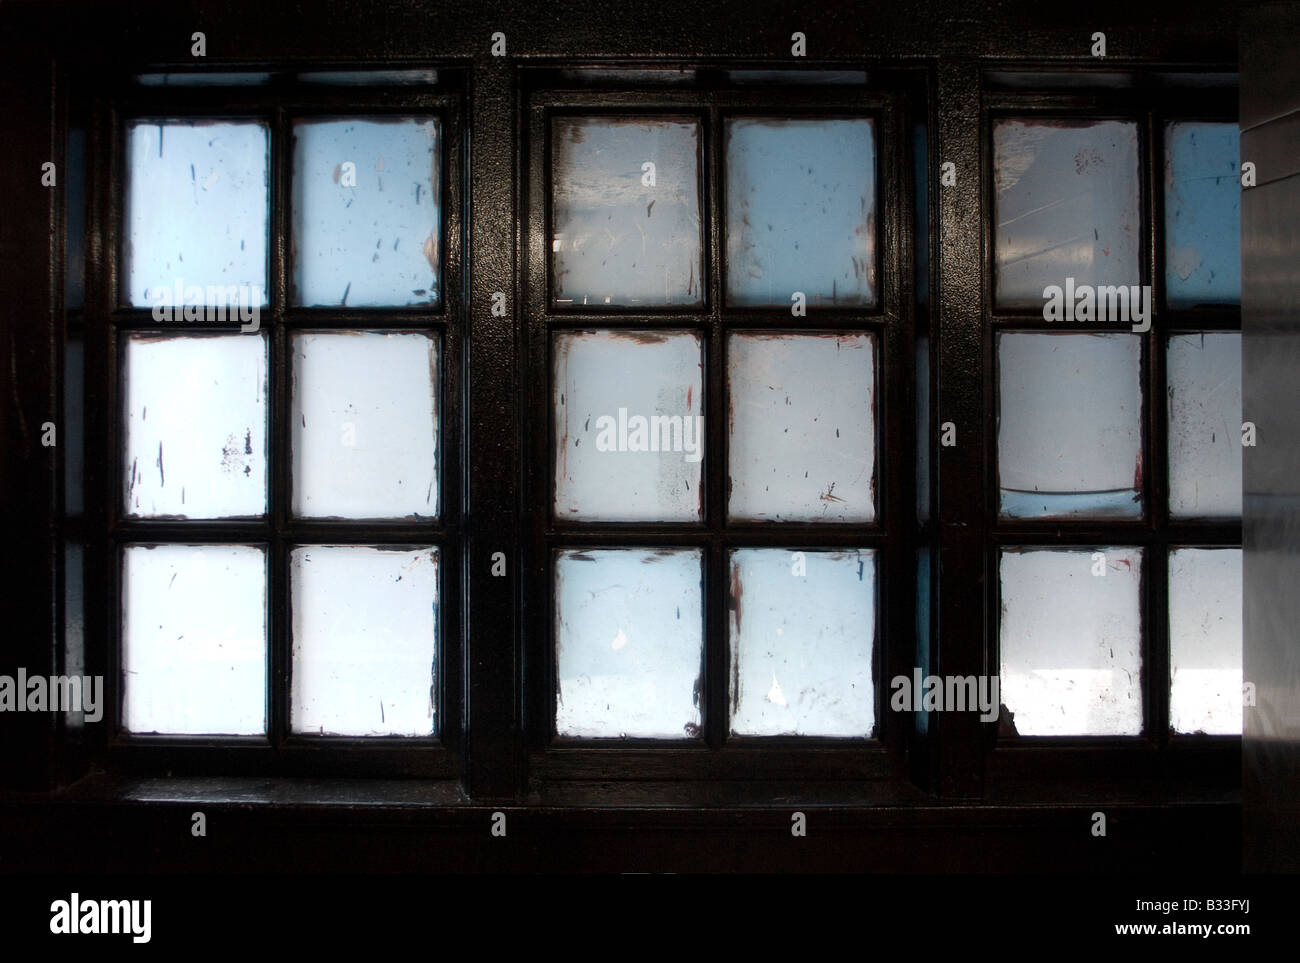 Six pane windows screen with opaque white and blue glass - Stock Image